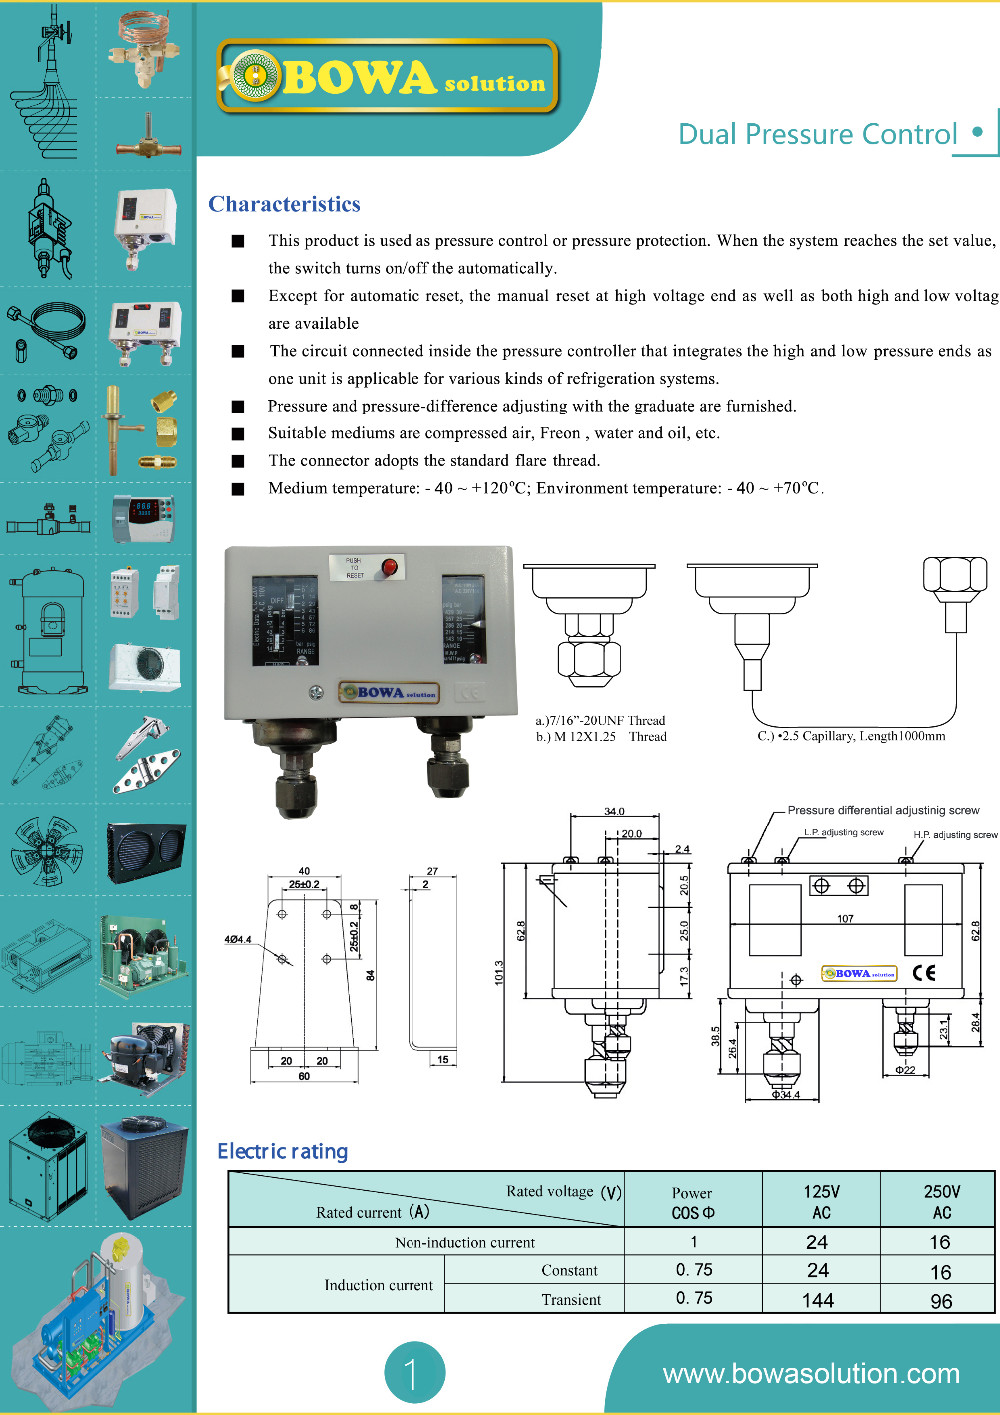 R410a Autoreset Dual Pressure Controls Is Used To Protect Danfoss Switch Wiring Diagram Dualpressure1 Dualpressure2 Xbottom